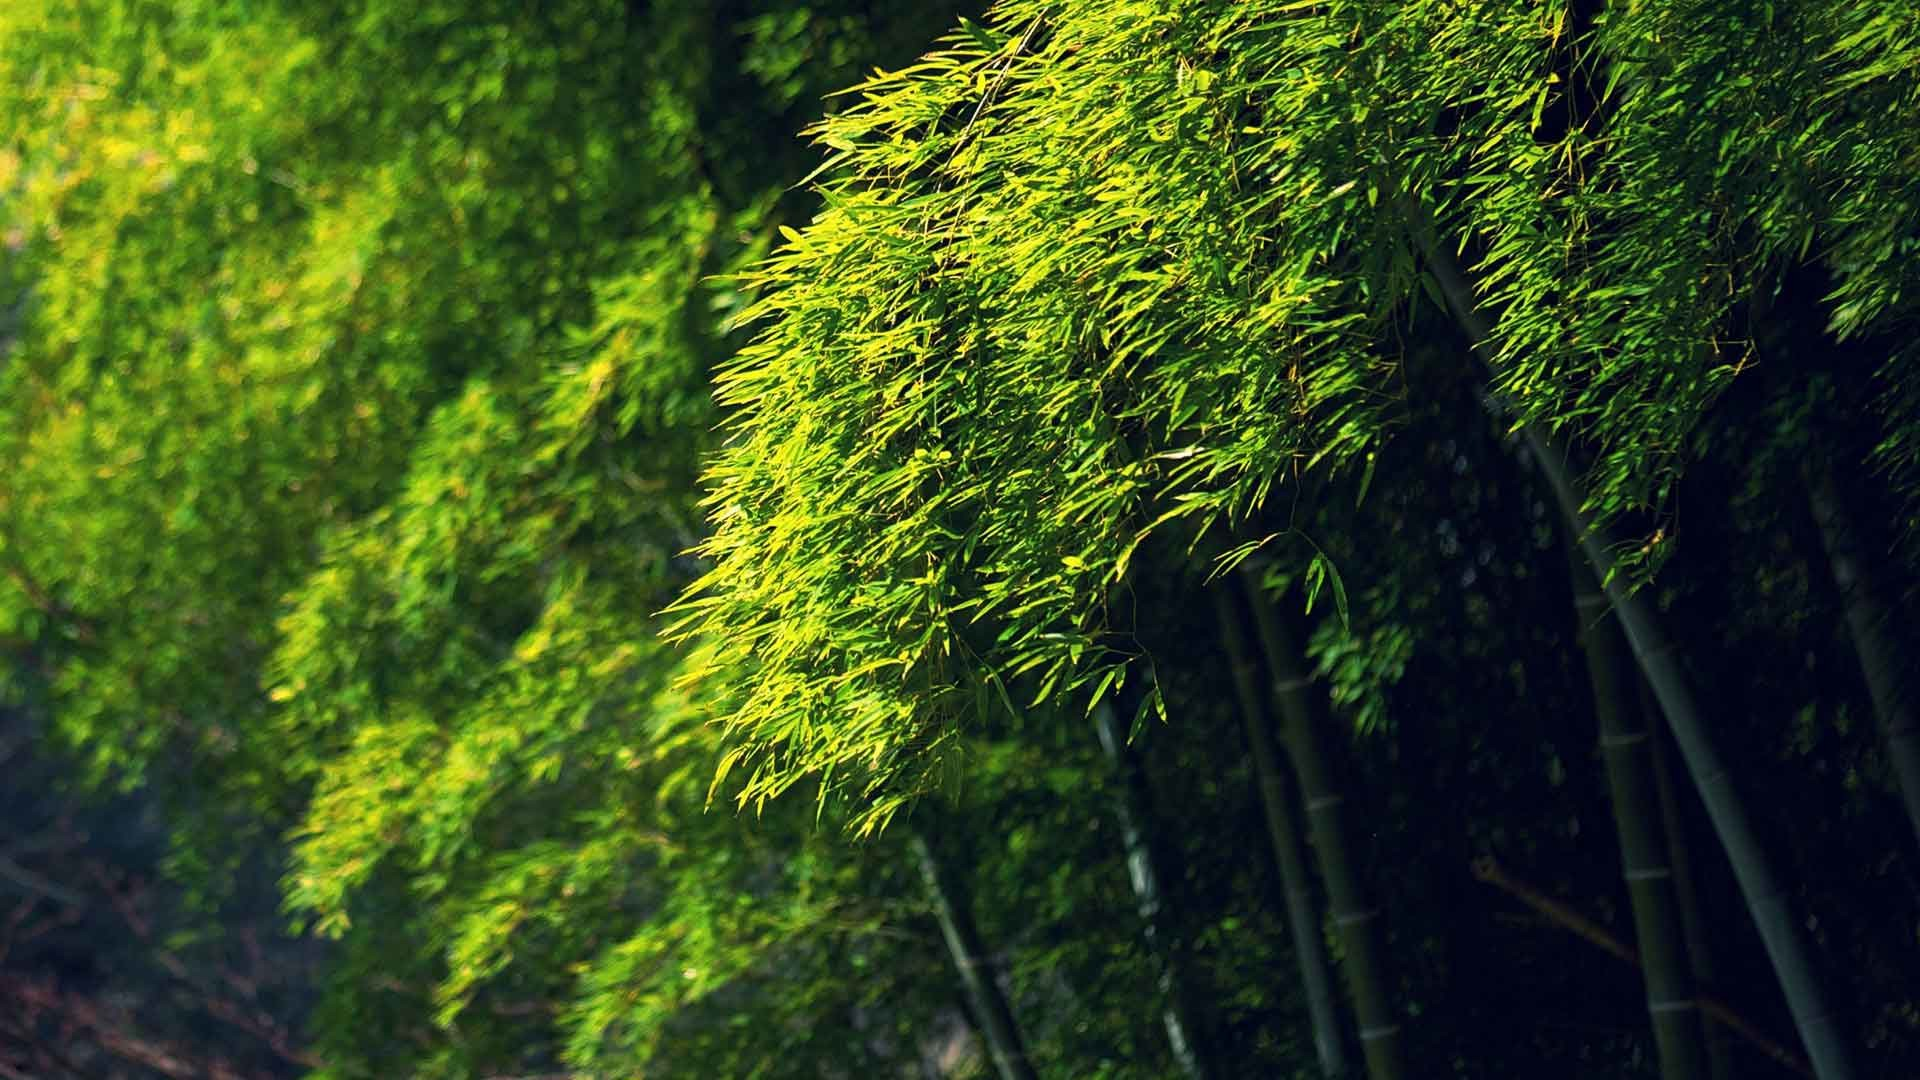 1920x1080 Trees Bamboo Green Bokeh Desktop Wallpaper Nature High Resolution